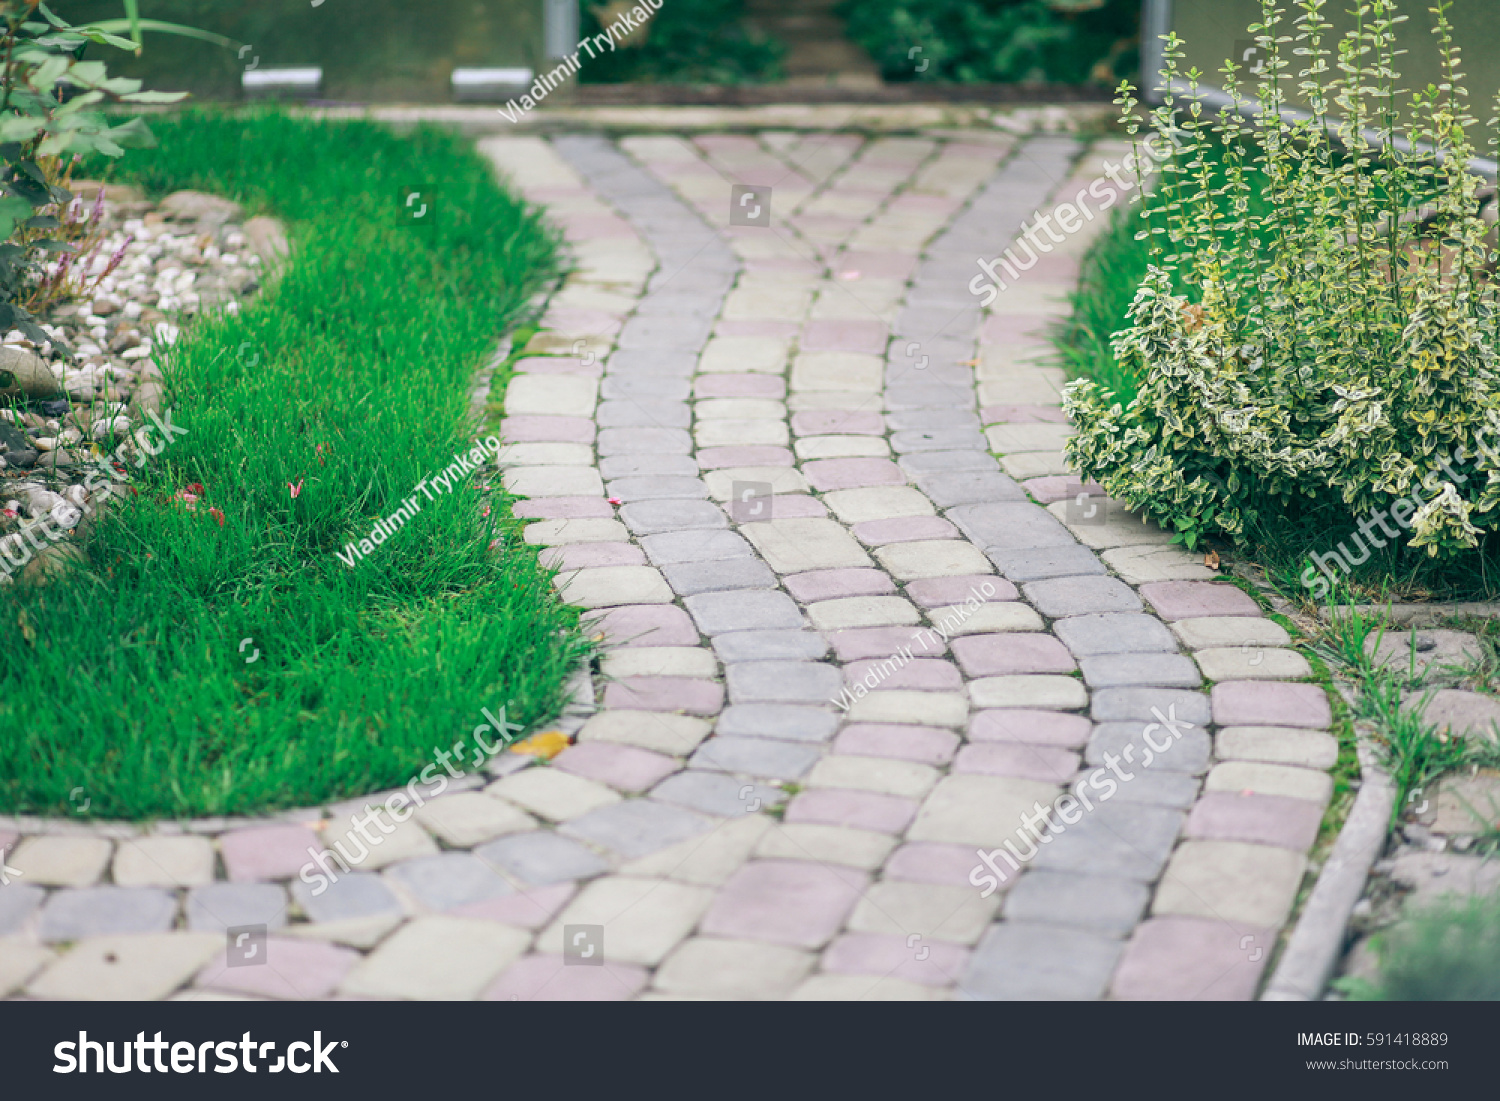 Nested pavers various colors around grass stock photo for Green pavers